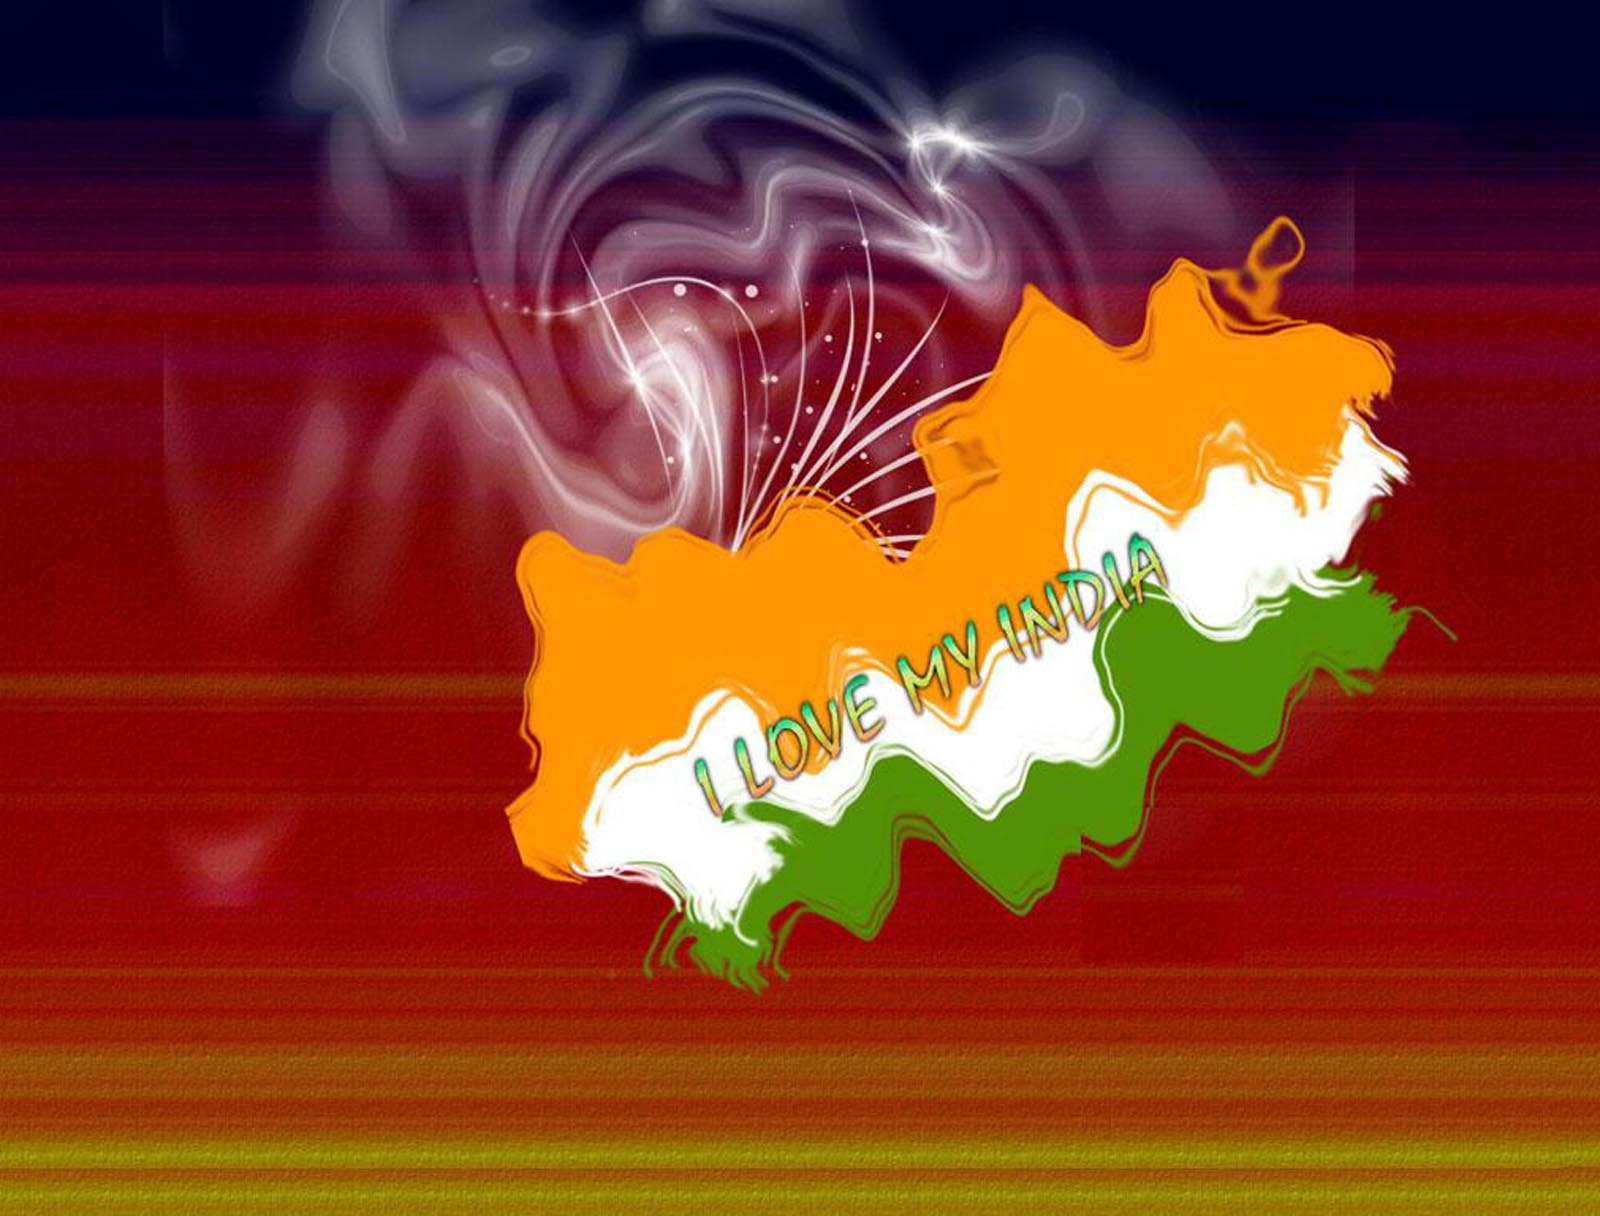 Indian Flag Hd Wallpaper: HD Wallpapers: Indian Flag Wallpapers